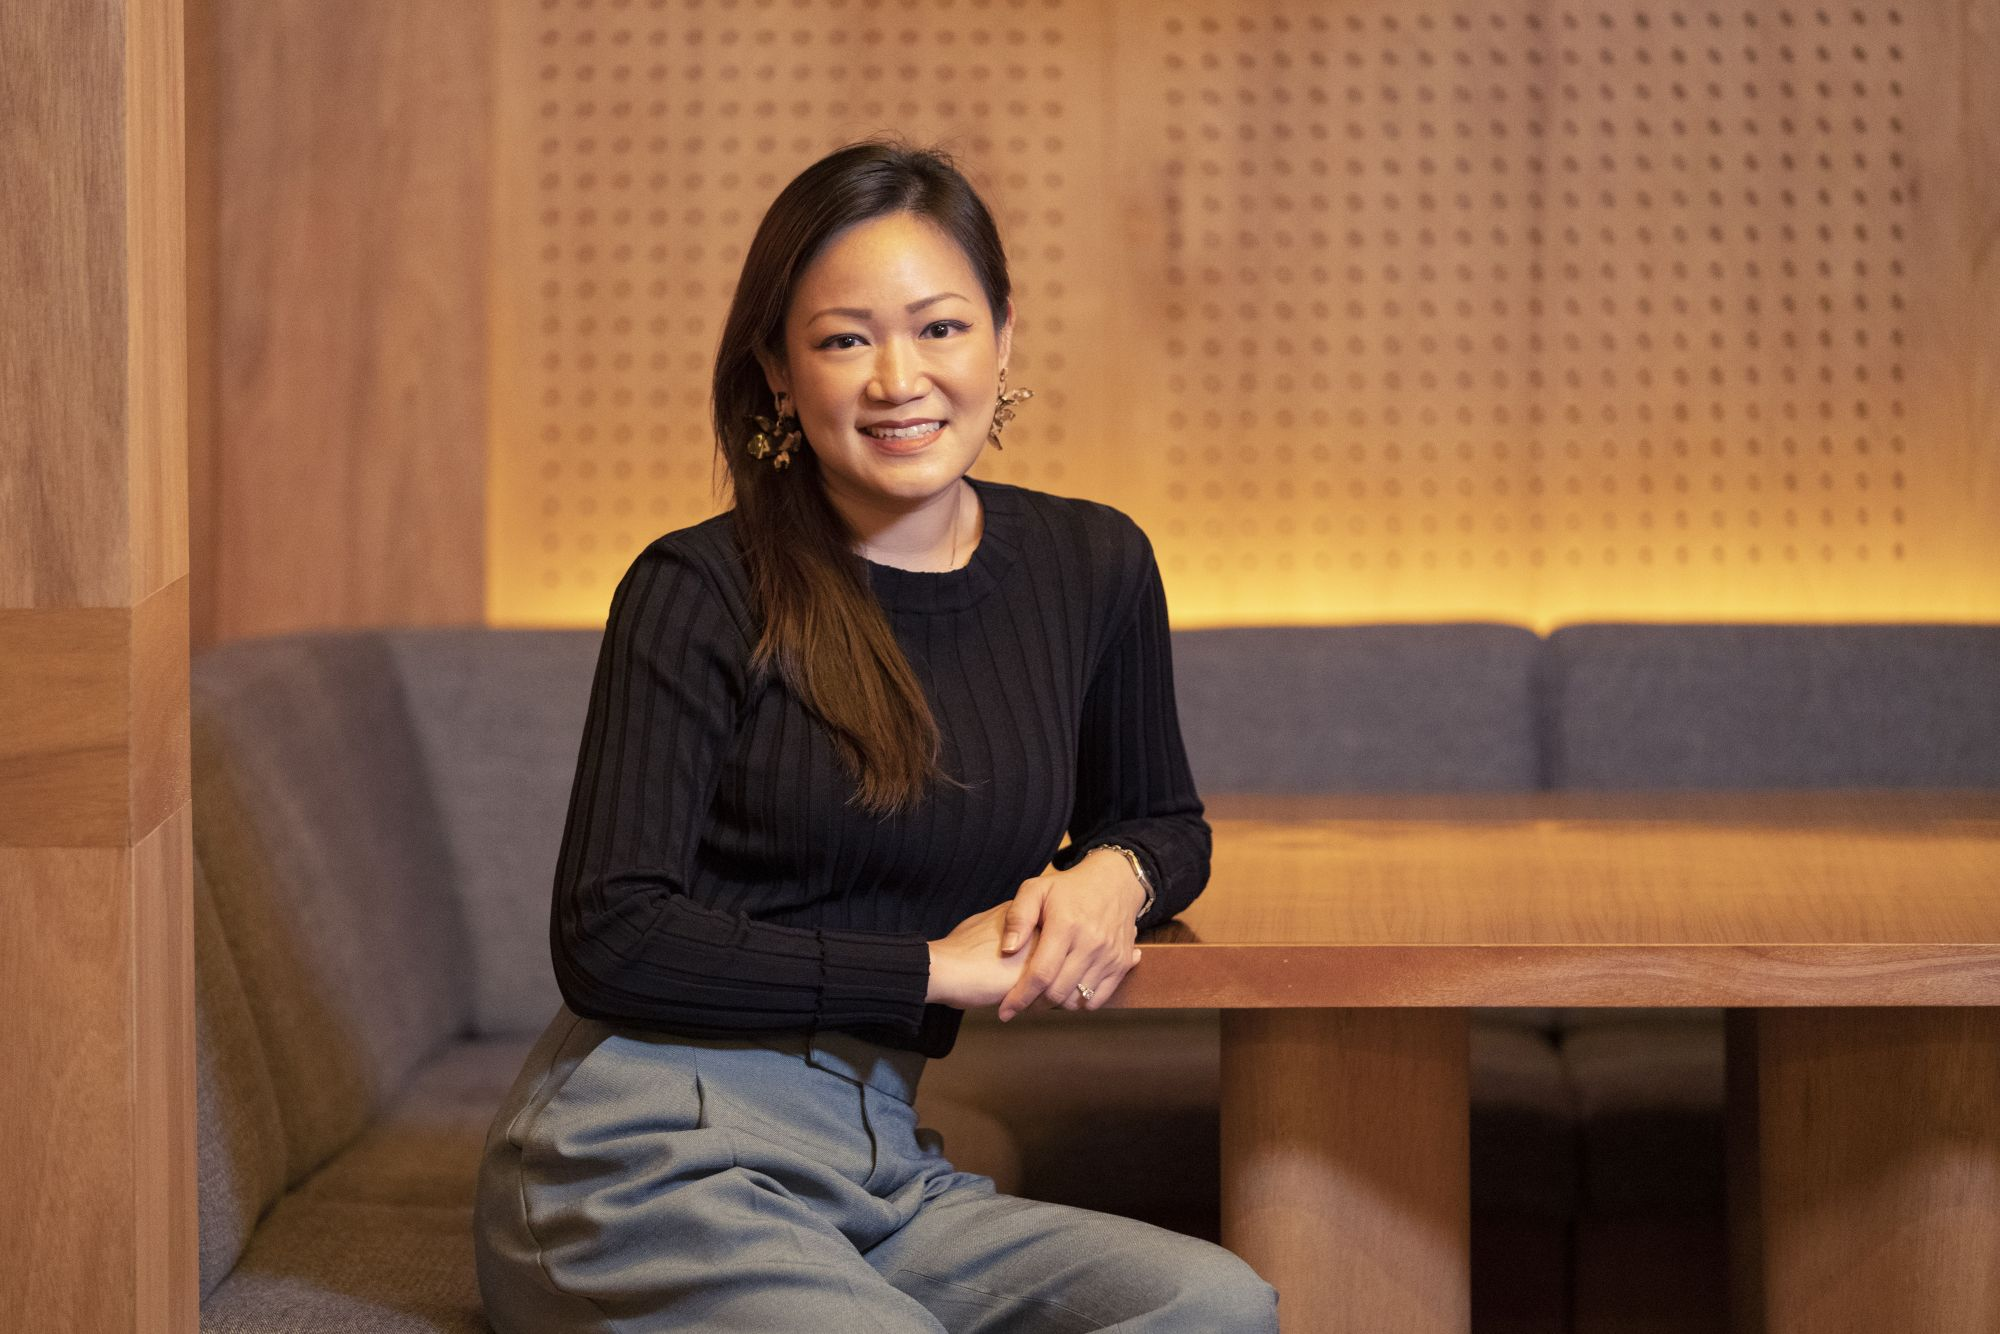 F&B Entrepreneur Gan Guoyi On Keeping Her Business And Industry Afloat In This Crisis